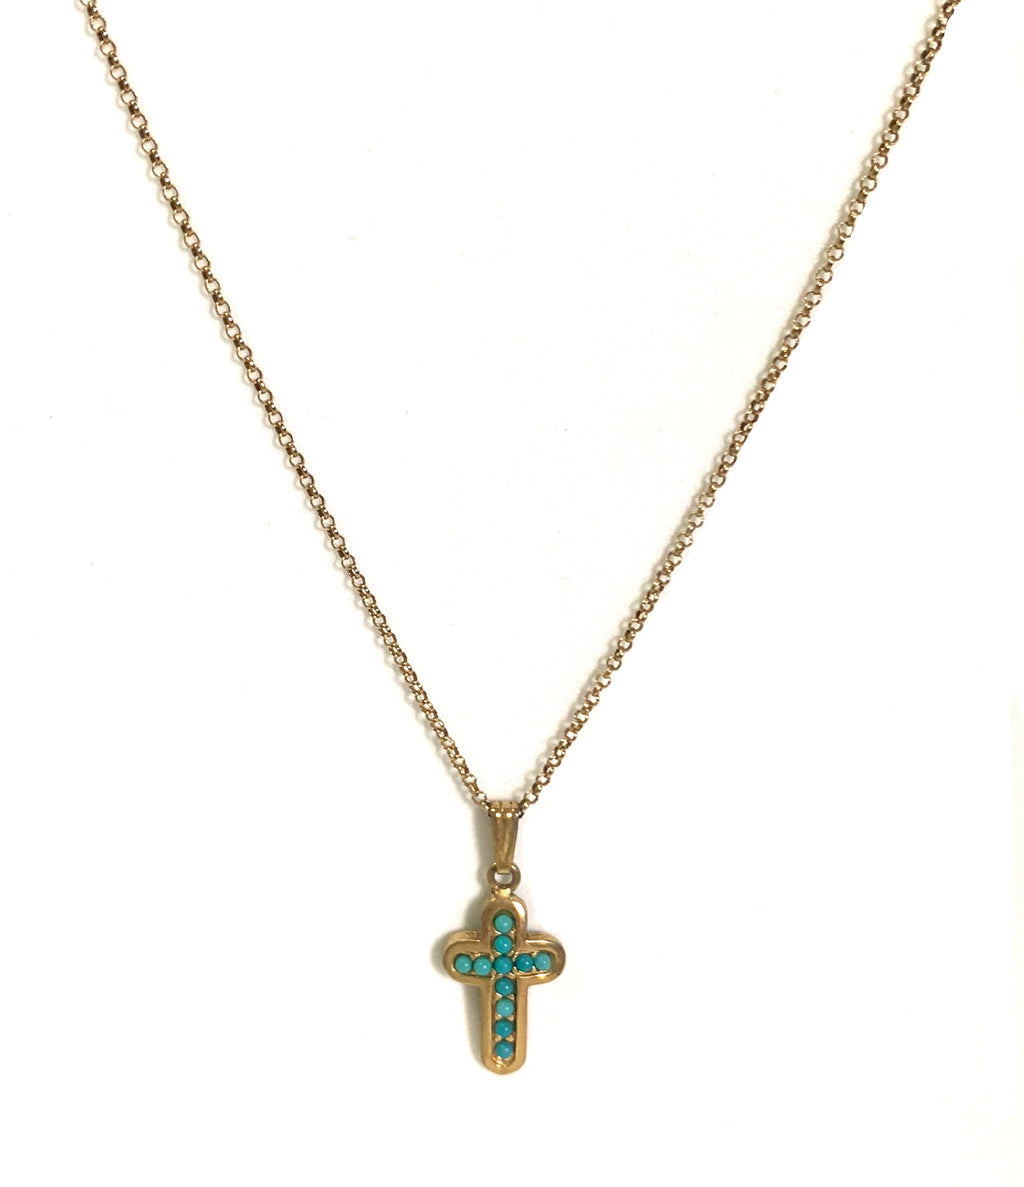 Vintage Cross gold necklace